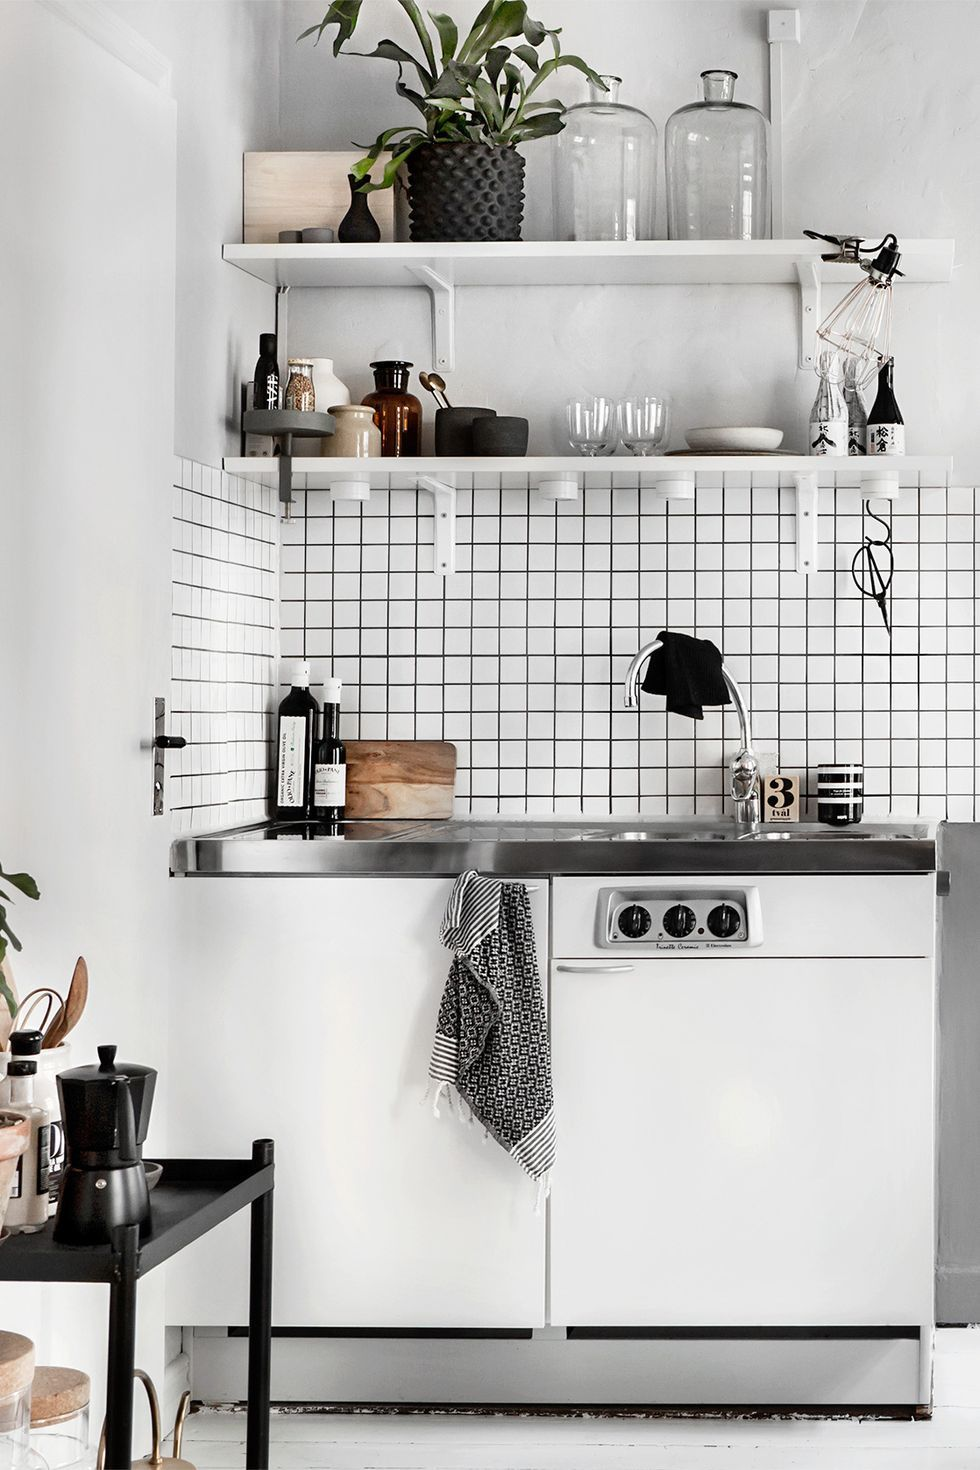 Stainless steel countertop in white kitchen with storage shelves